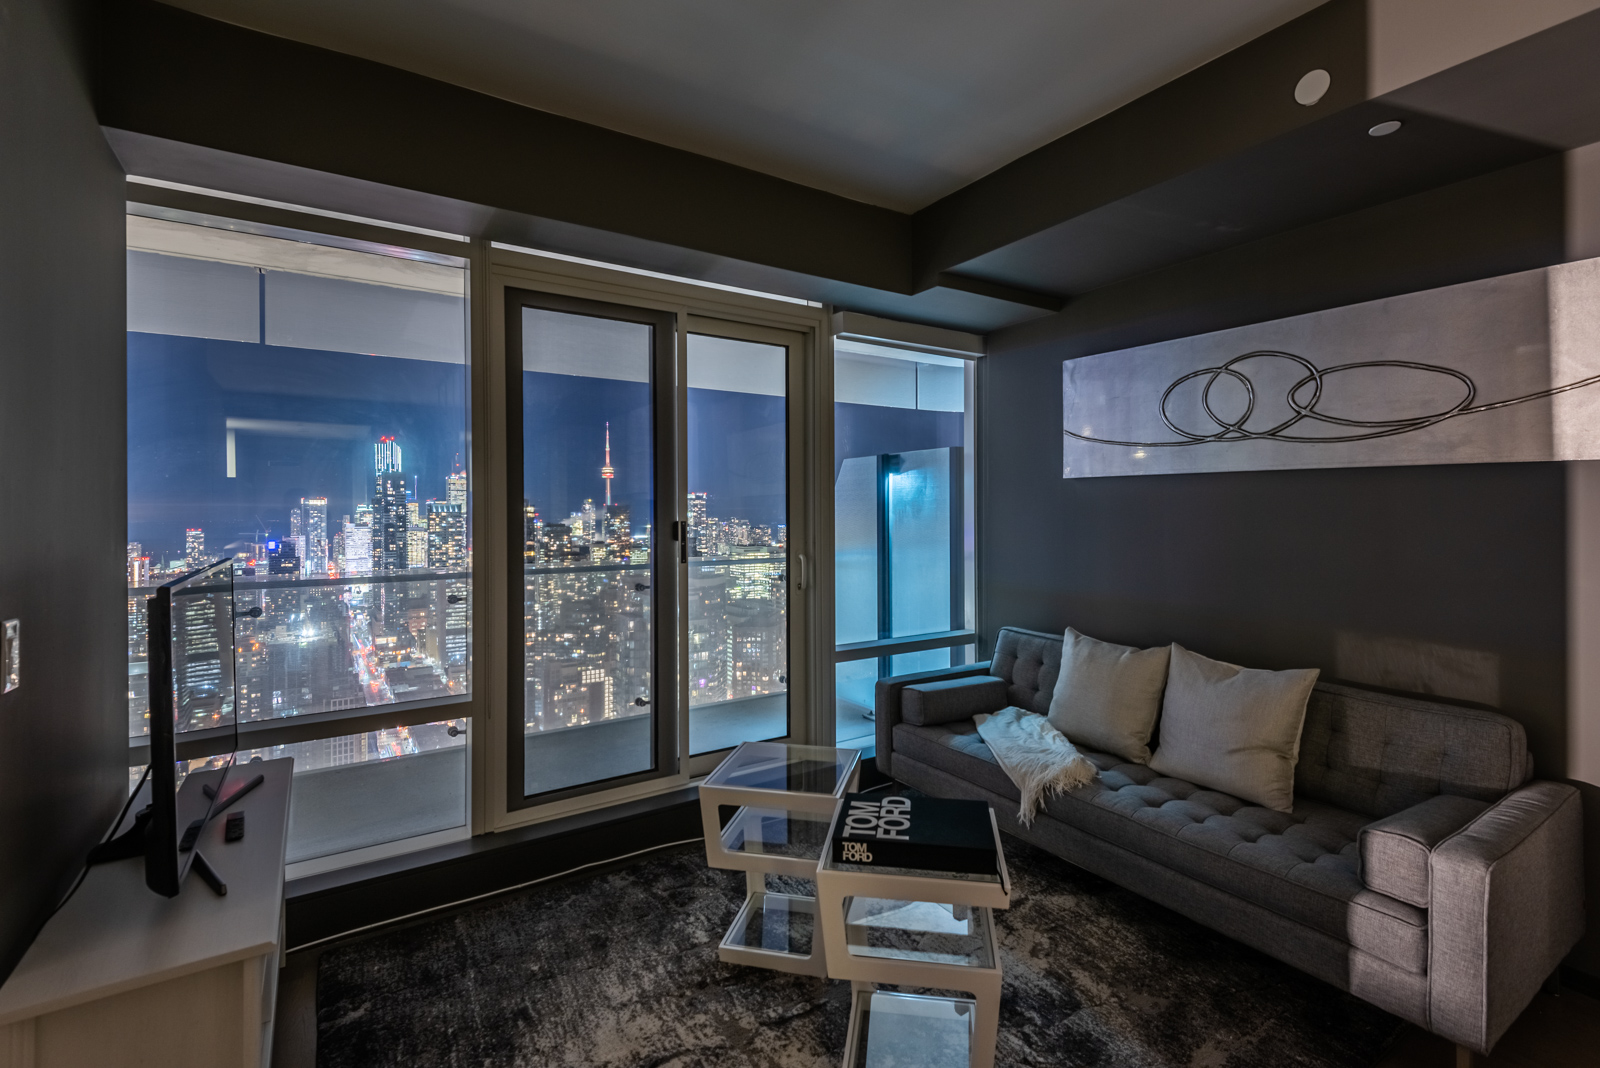 Living room at night with view of Toronto skyline through windows of 1 Bloor St